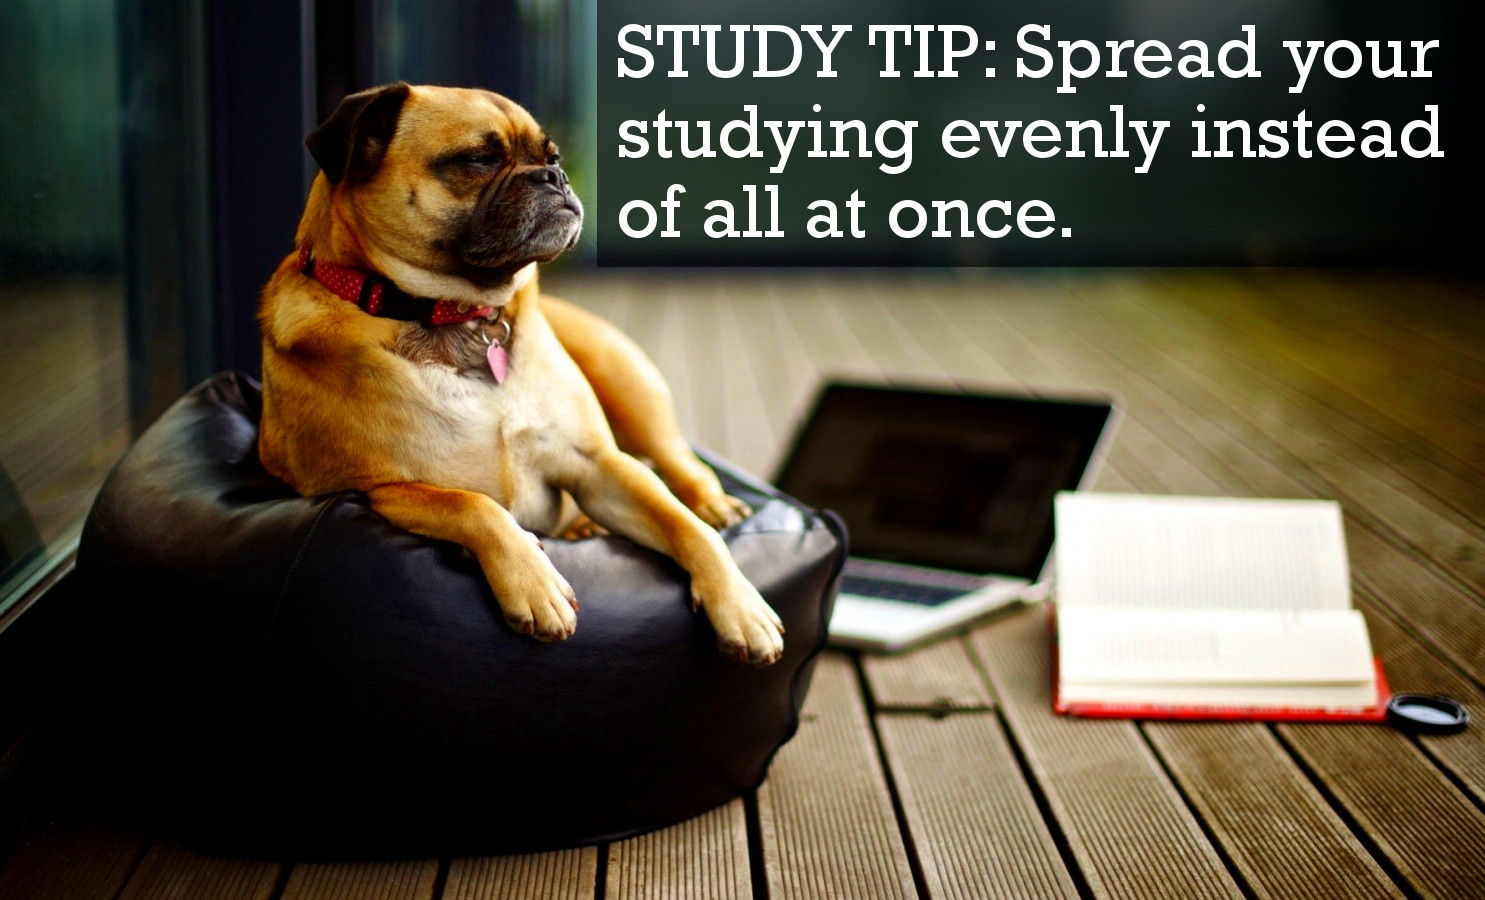 Spread Your Studying Evenly